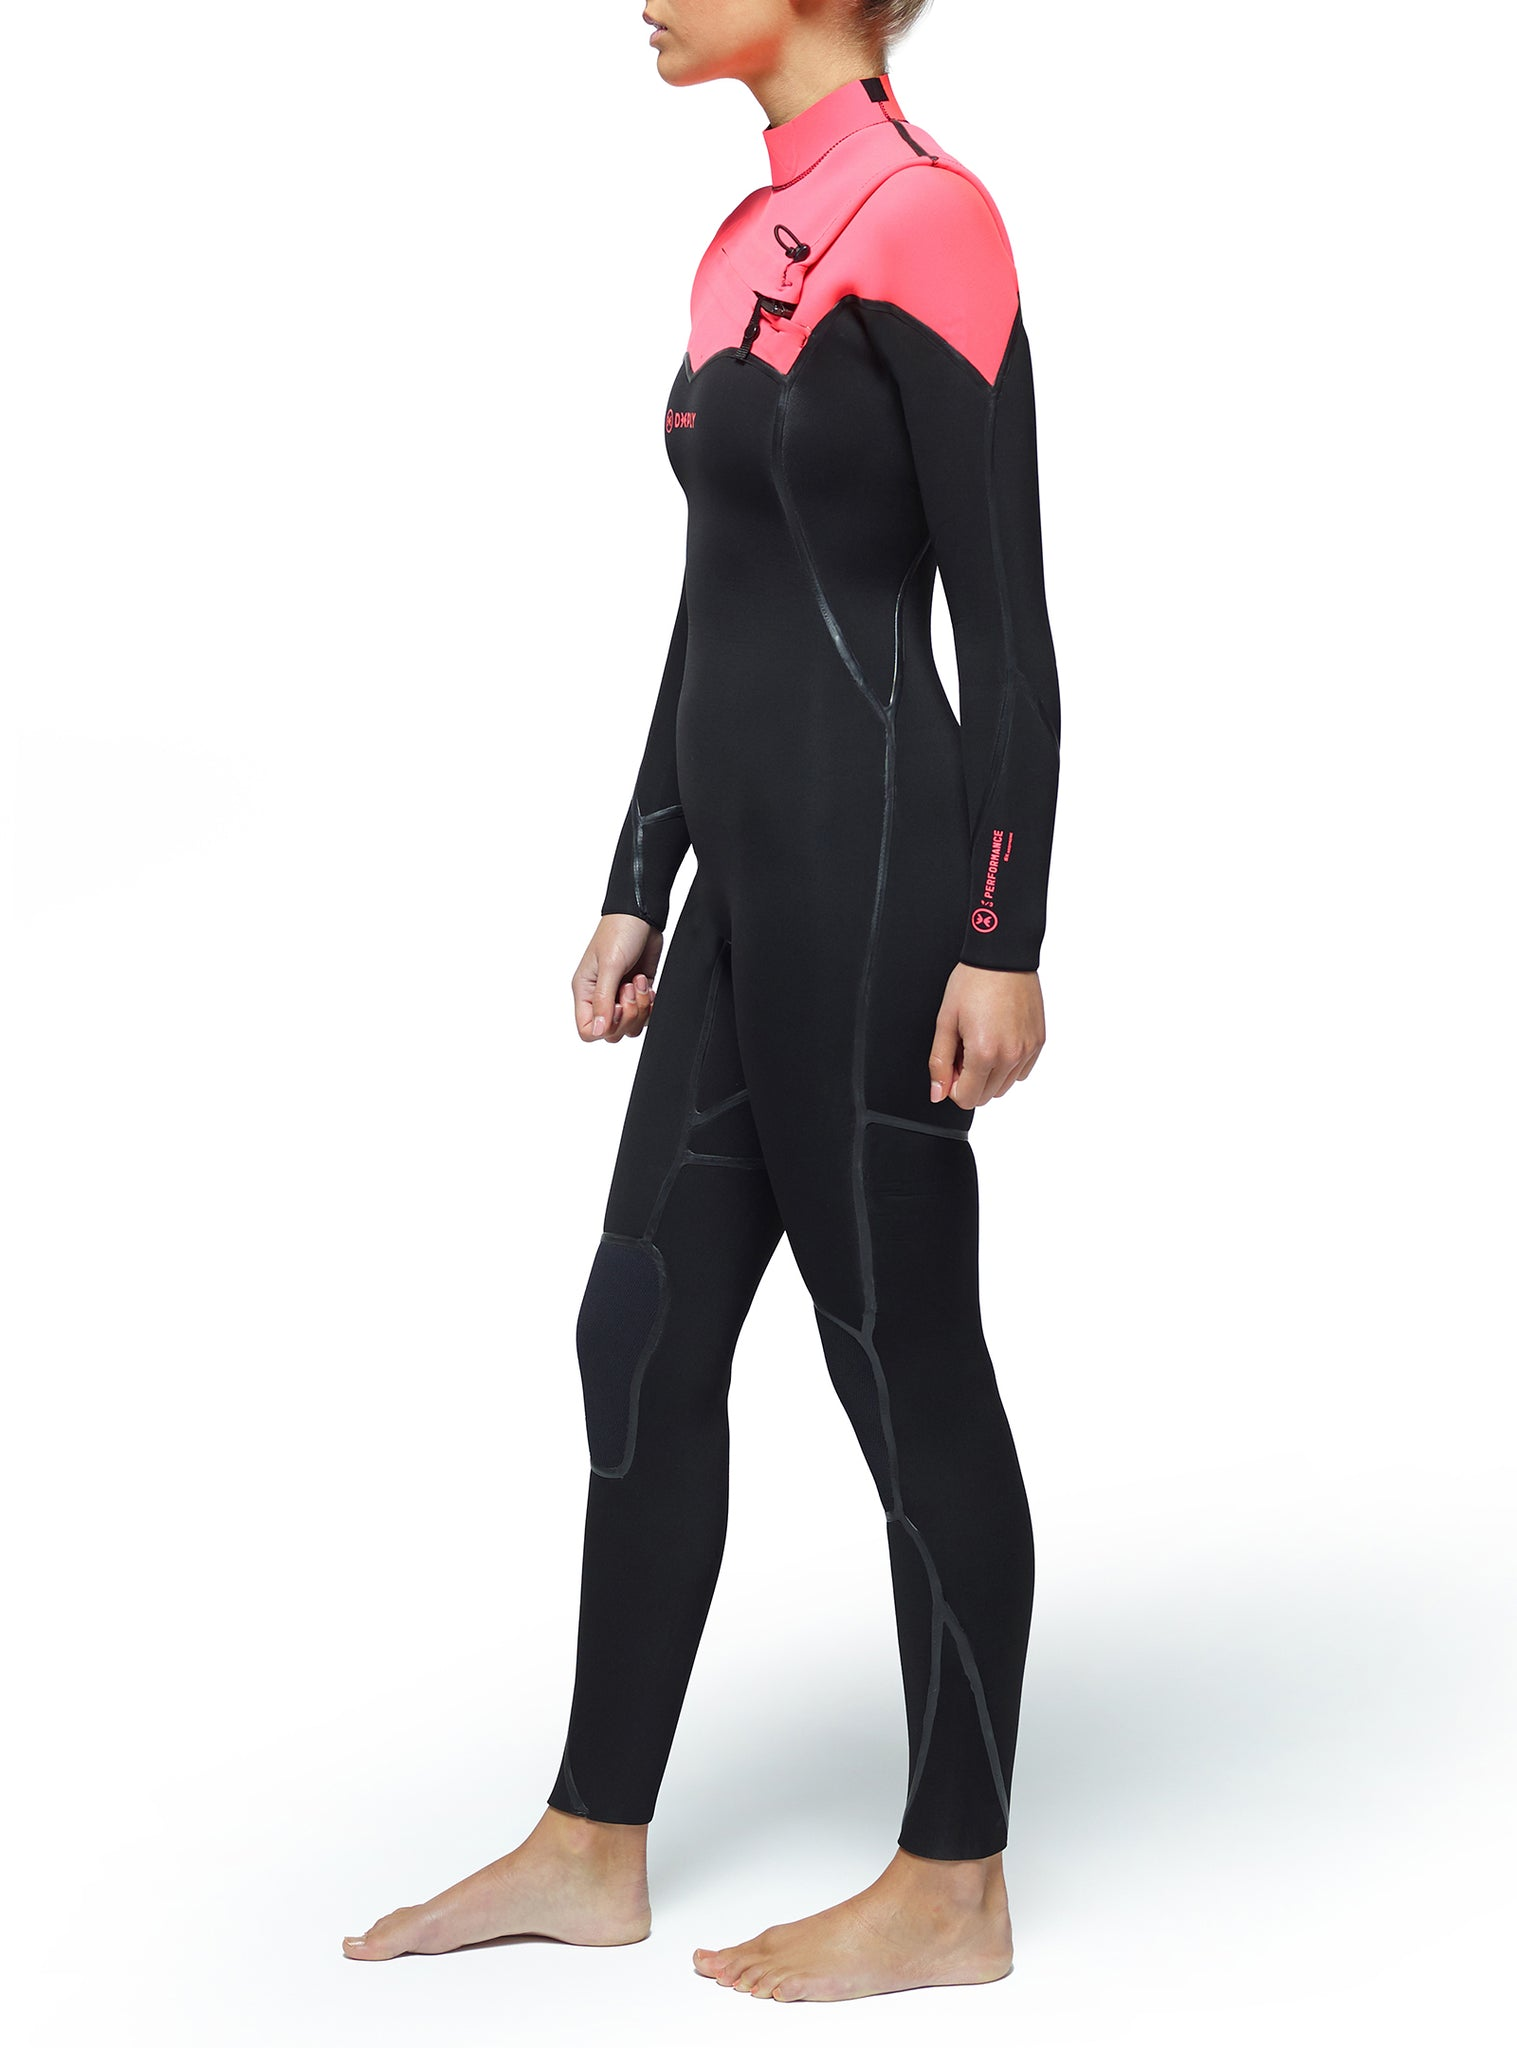 Wetsuit Woman Performance 4/3 Chest Zip Pink